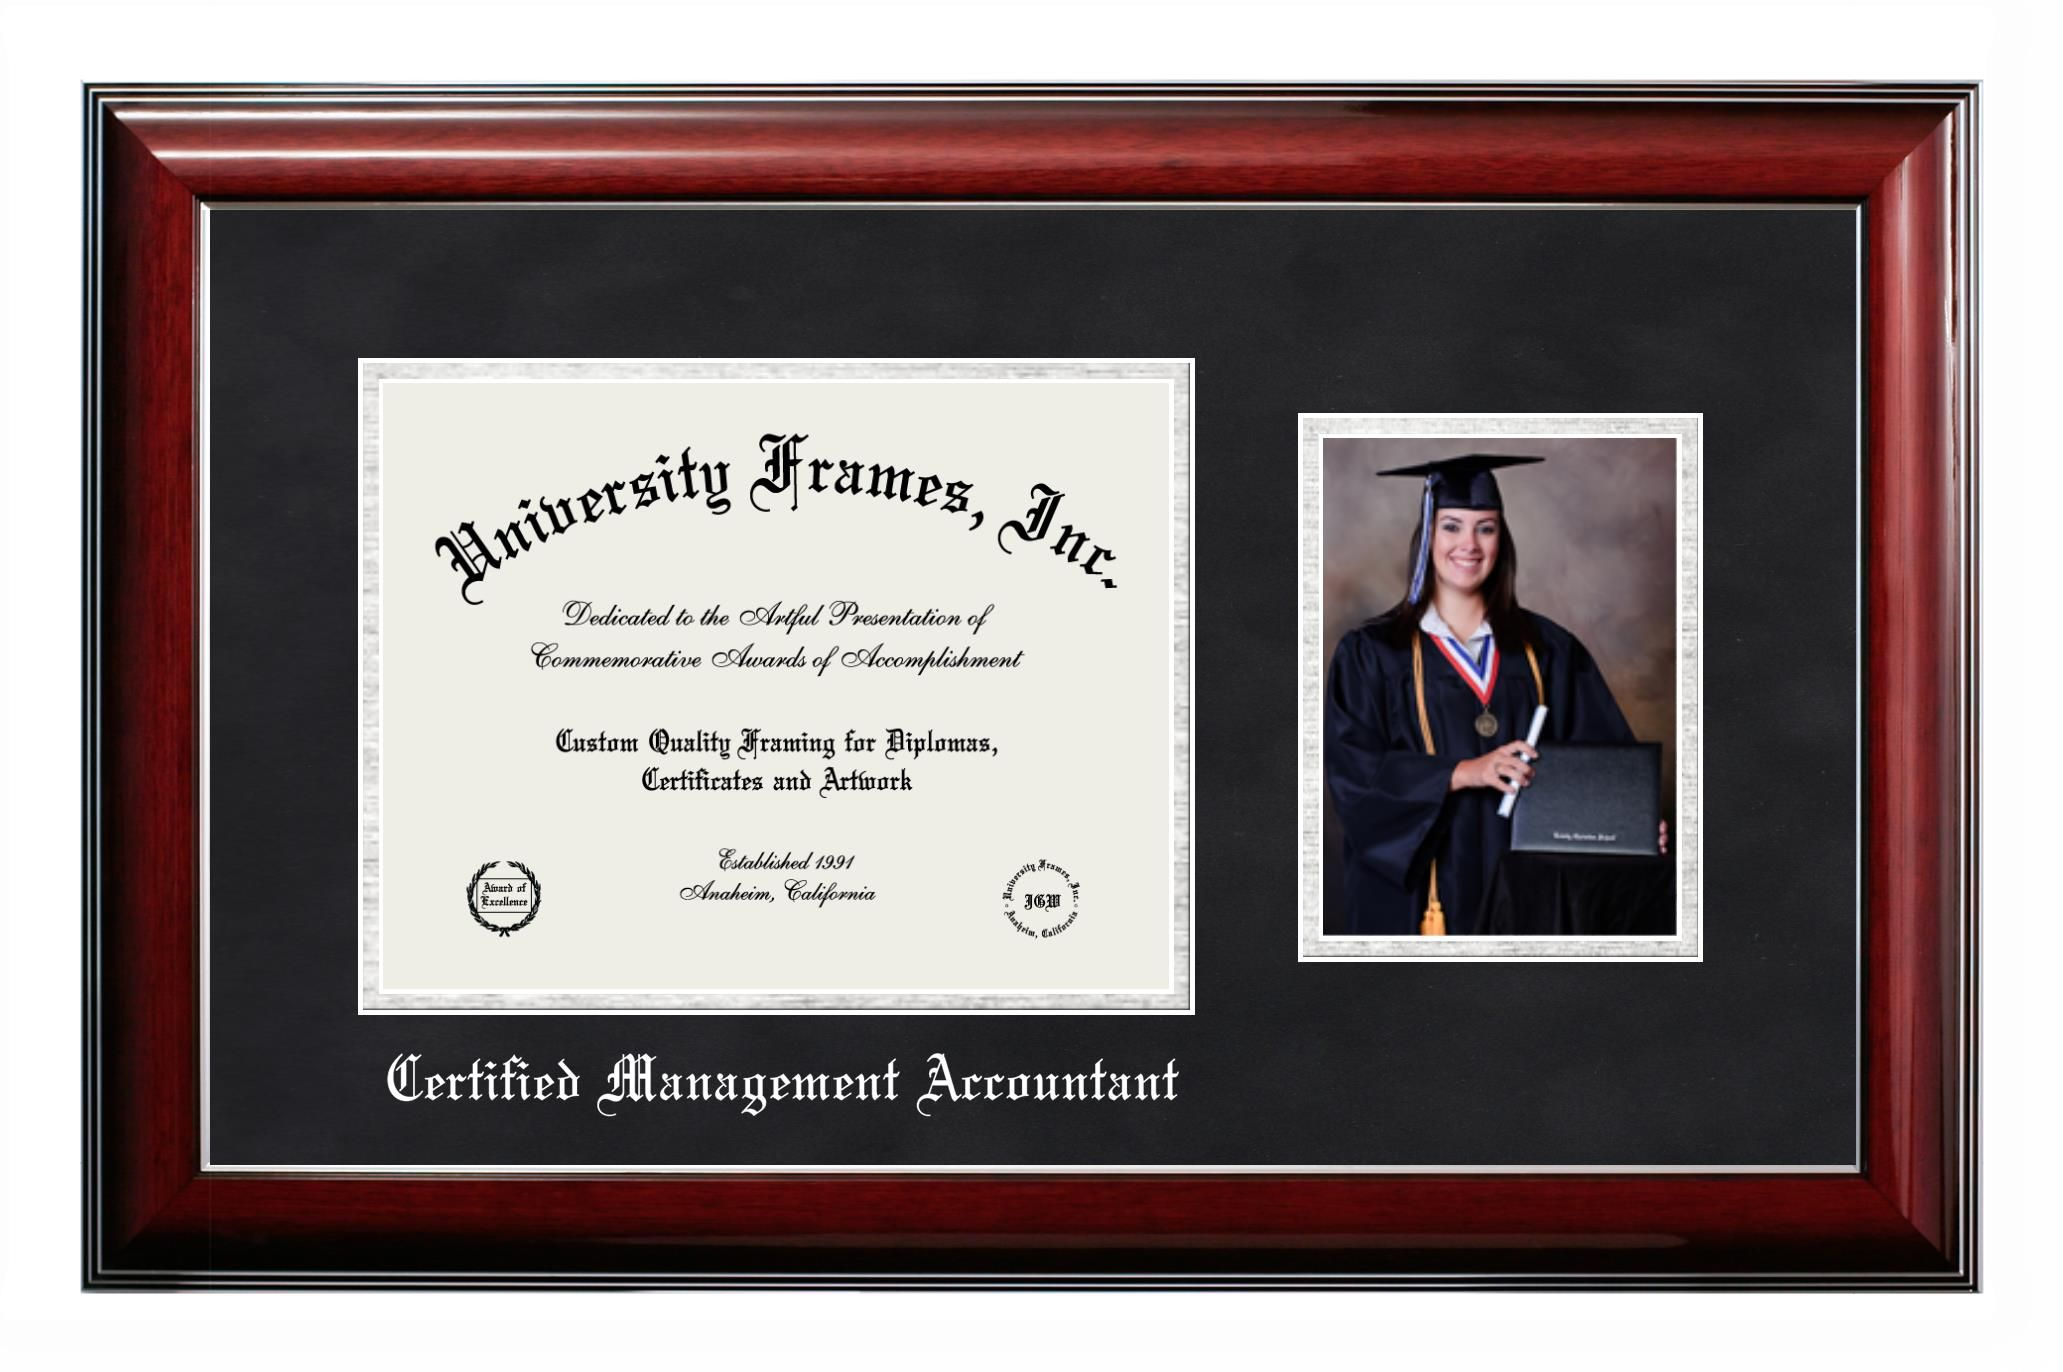 Certified Management Accountant Diploma With 5 X 7 Portrait Frame Diploma Frame Chicago School Frame